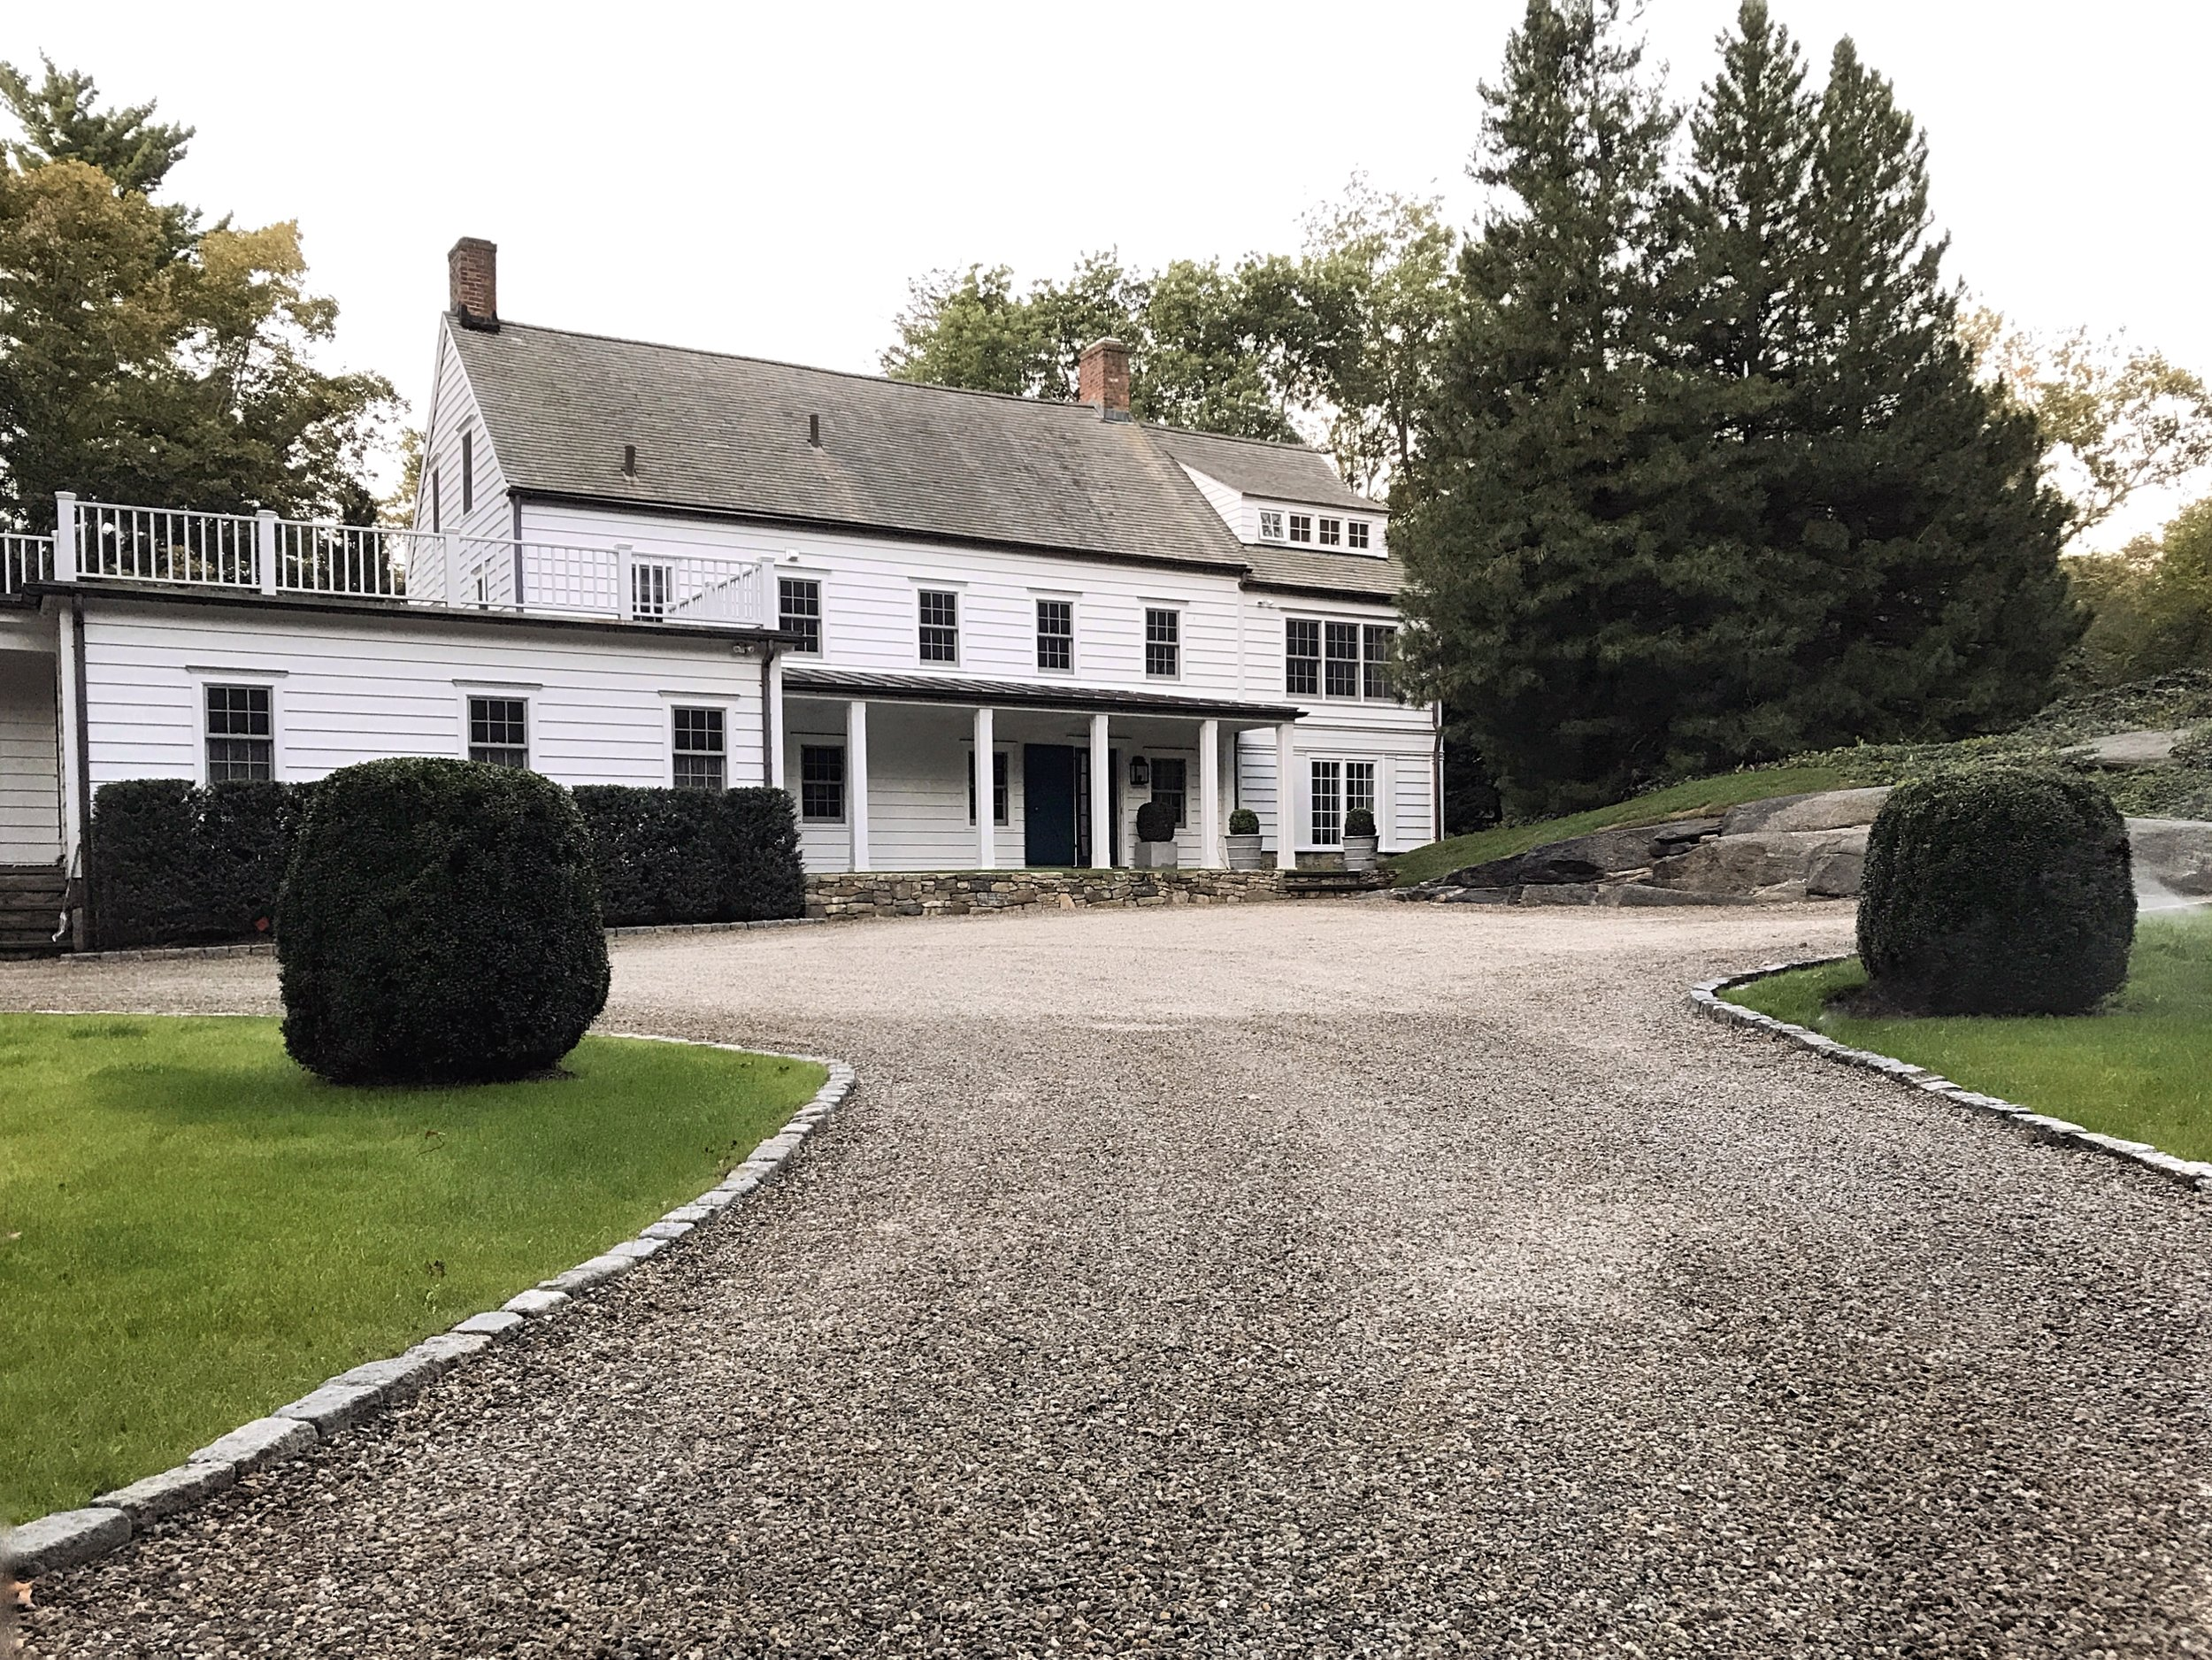 Renovated 18th Century farmhouse with a reconfigured driveway approach and front entry to home